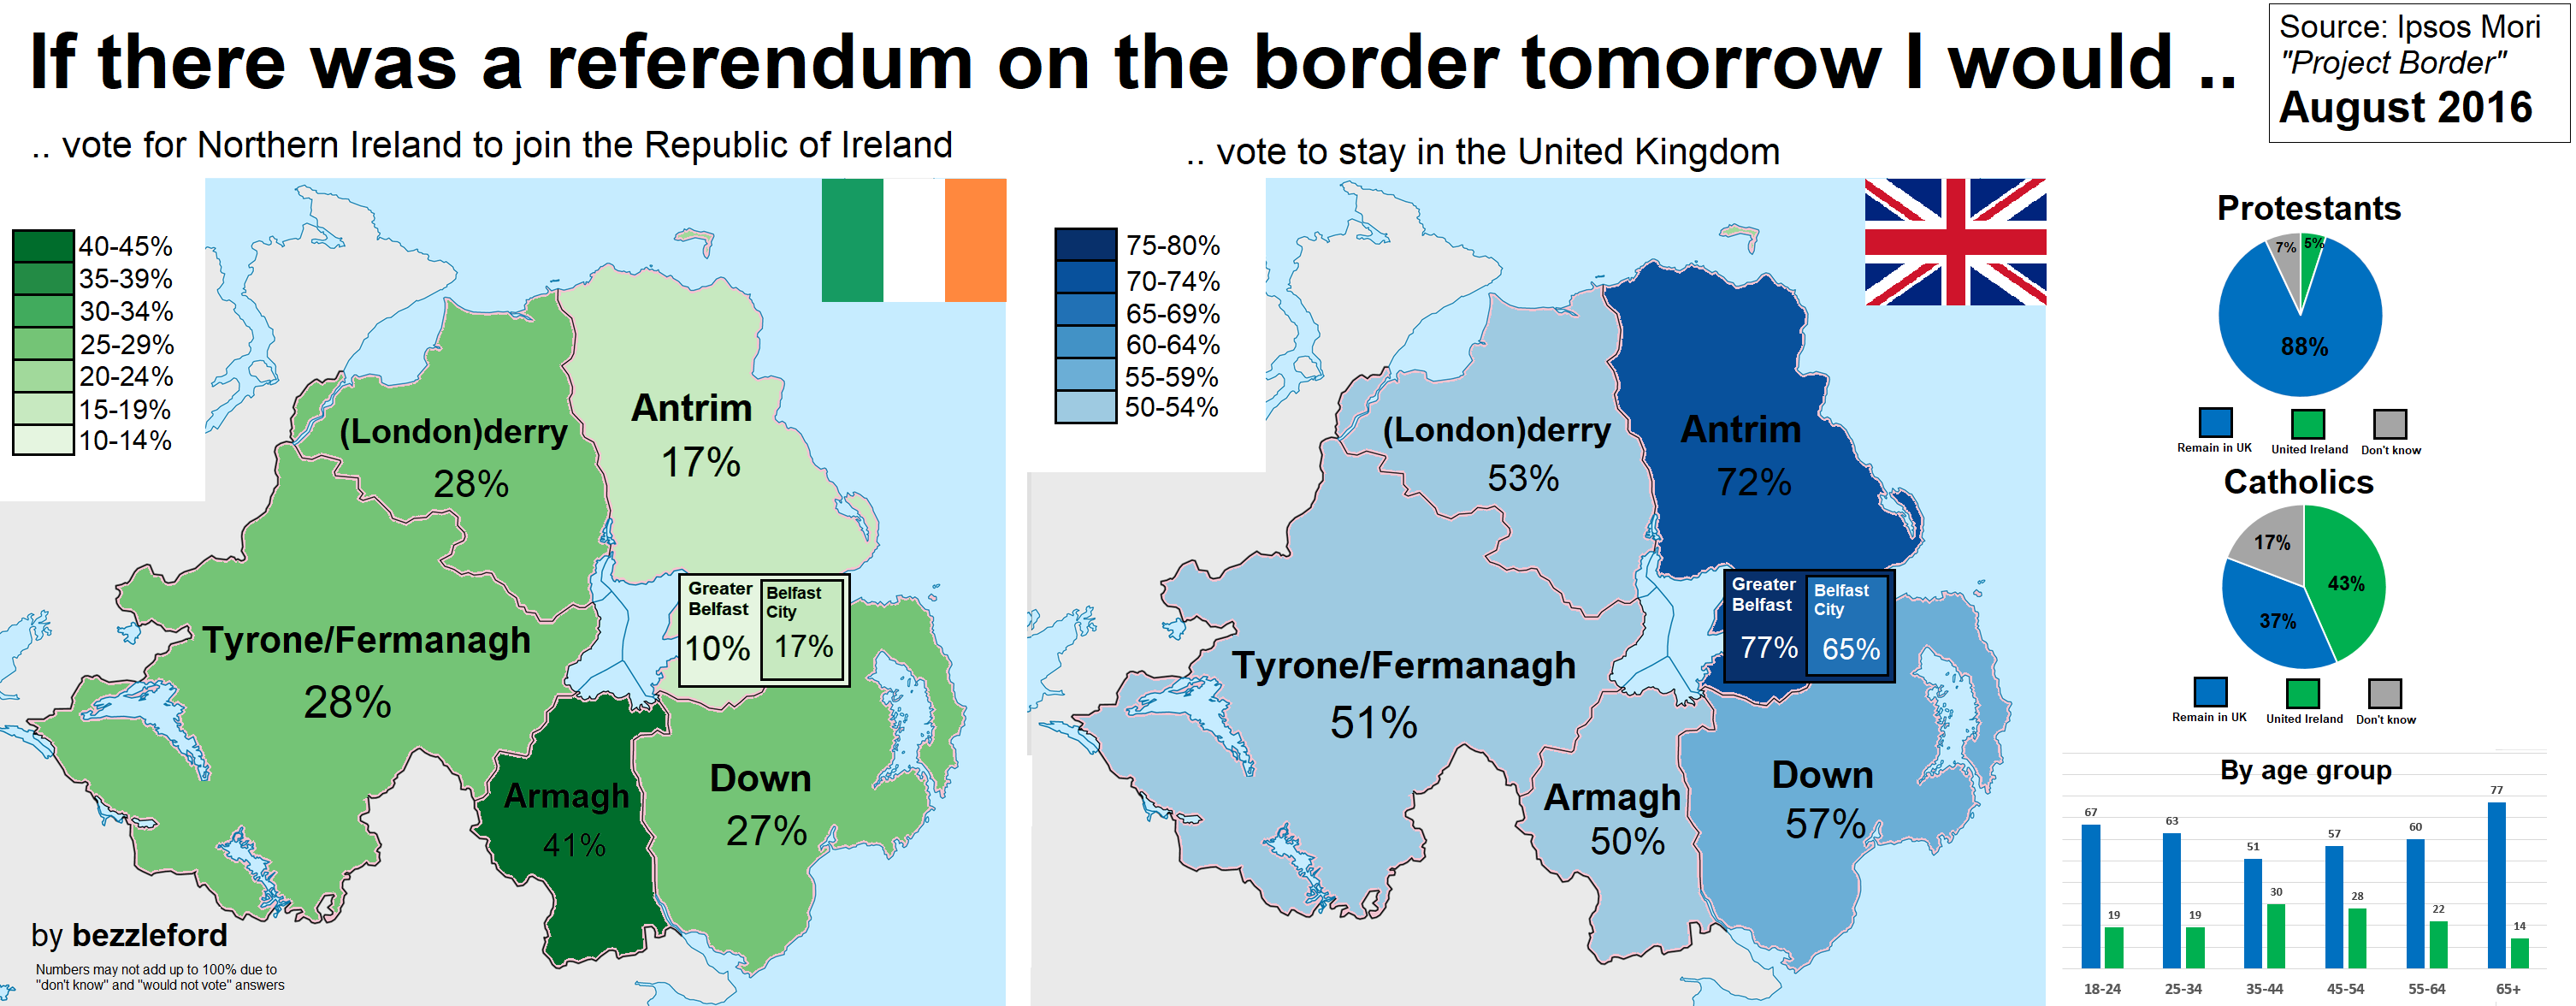 If there was a referendum on the Northern Ireland border ... on map of gibraltar, map of southern ireland, map of county mayo, map of austria, map of israel, map of united kingdom, map of scotland, map of england, map of belfast, map of wales, map of ireland counties, map of afghanistan, map of europe, map of ballybofey, map of dublin, map of giant's causeway, map of uk, map of ireland map, map of ulster, map of us and ireland,